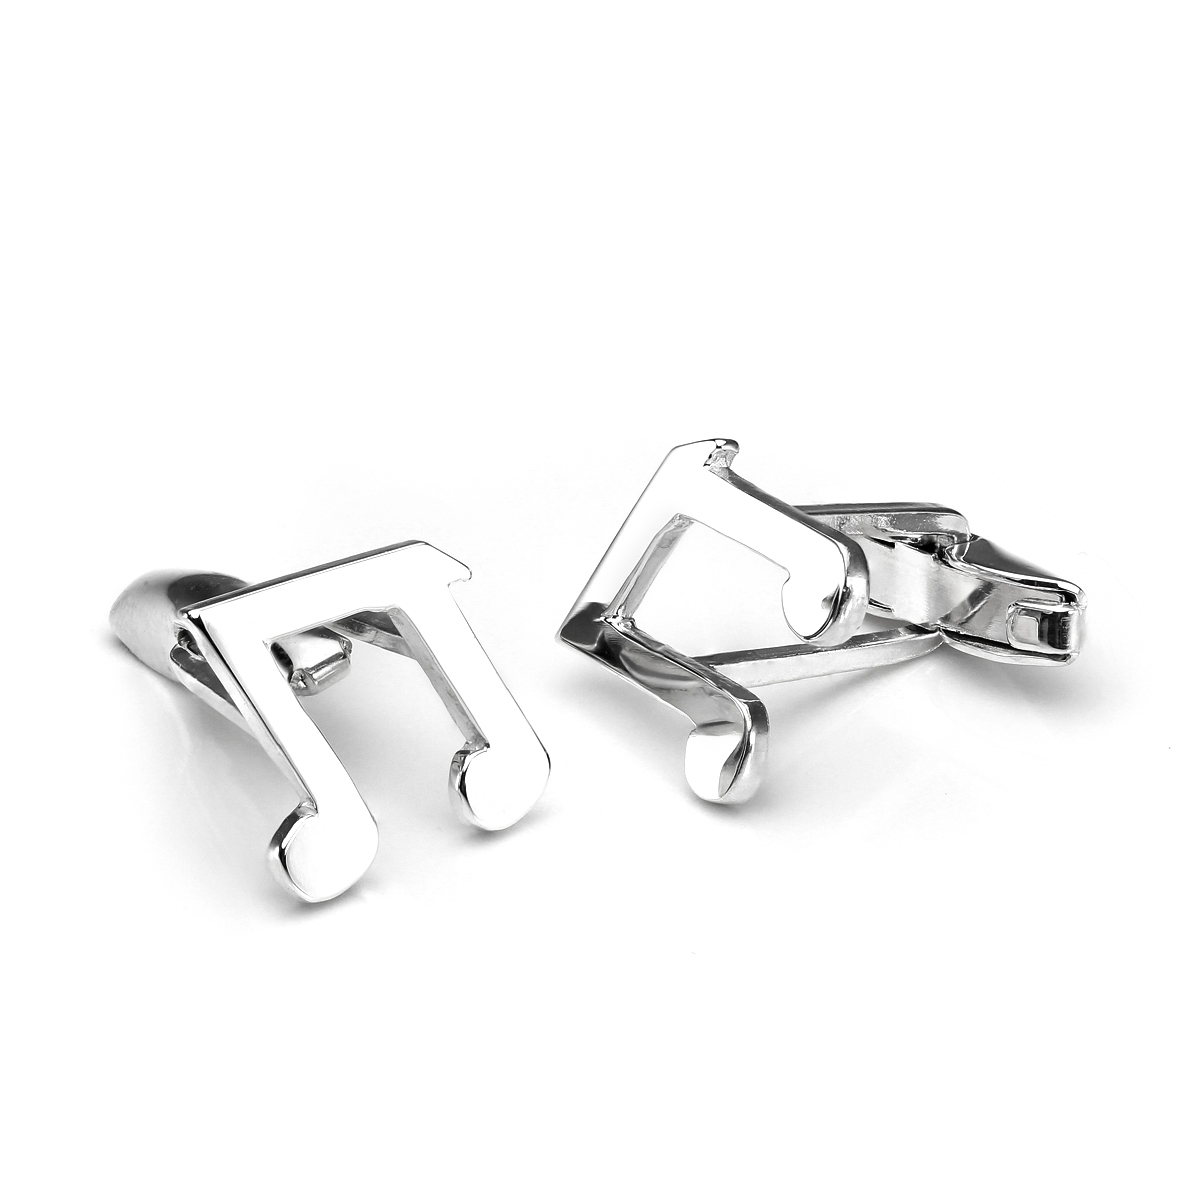 An image of Sterling Silver Music Note Swivel Back Cufflinks